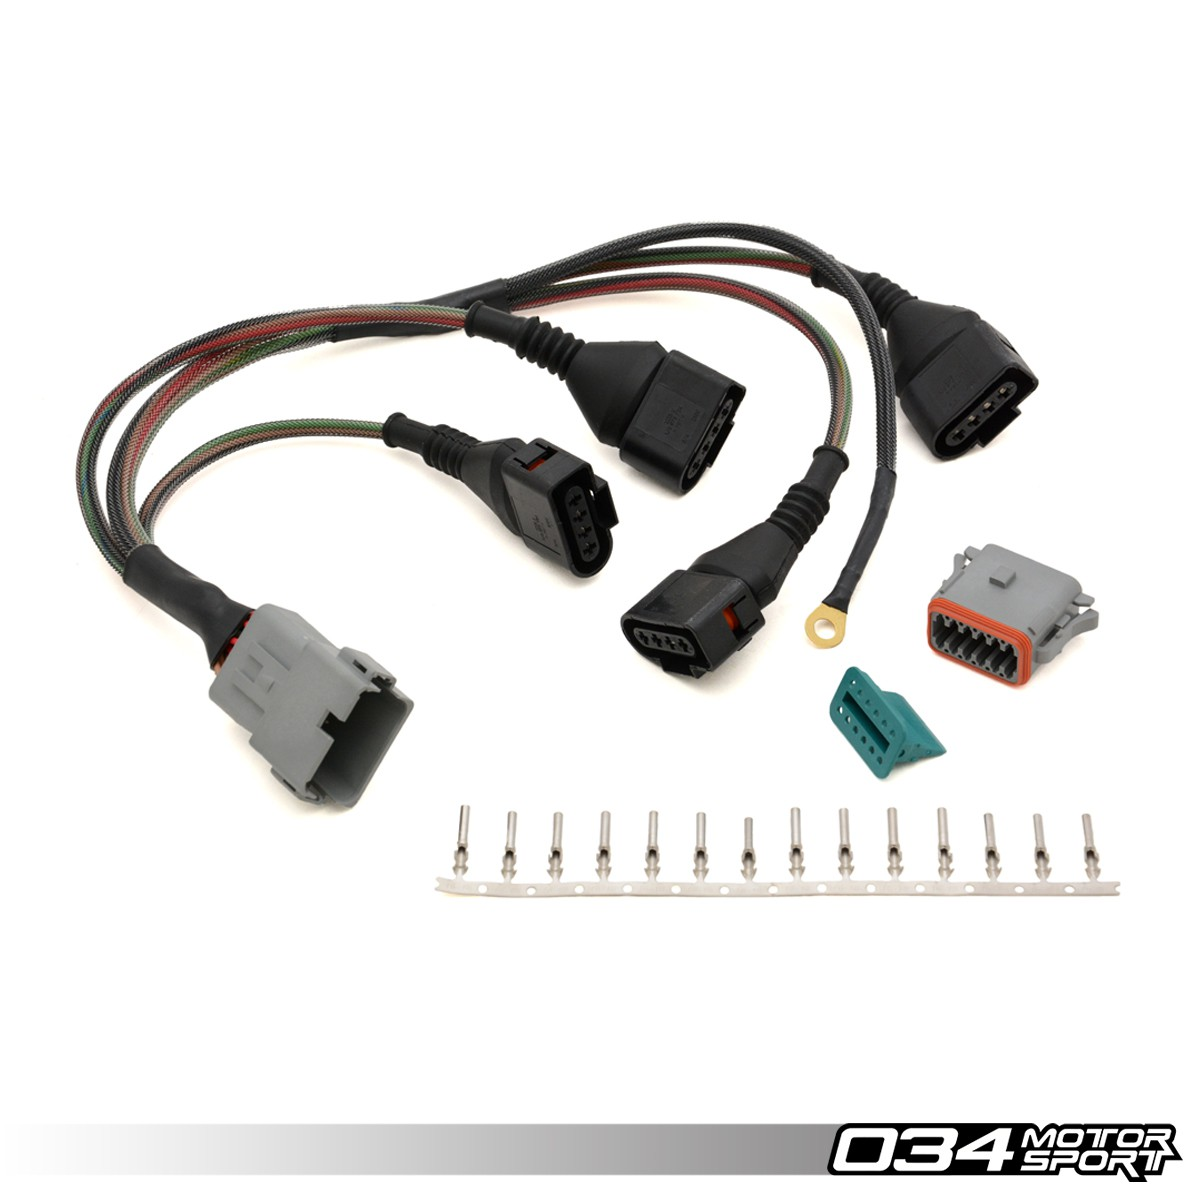 repair update harness audi volkswagen 18t with 4 wire coils 034motorsport 034 701 0004 2 repair update harness, audi volkswagen 1 8t with 4 wire coils electrical wiring harness connectors at webbmarketing.co